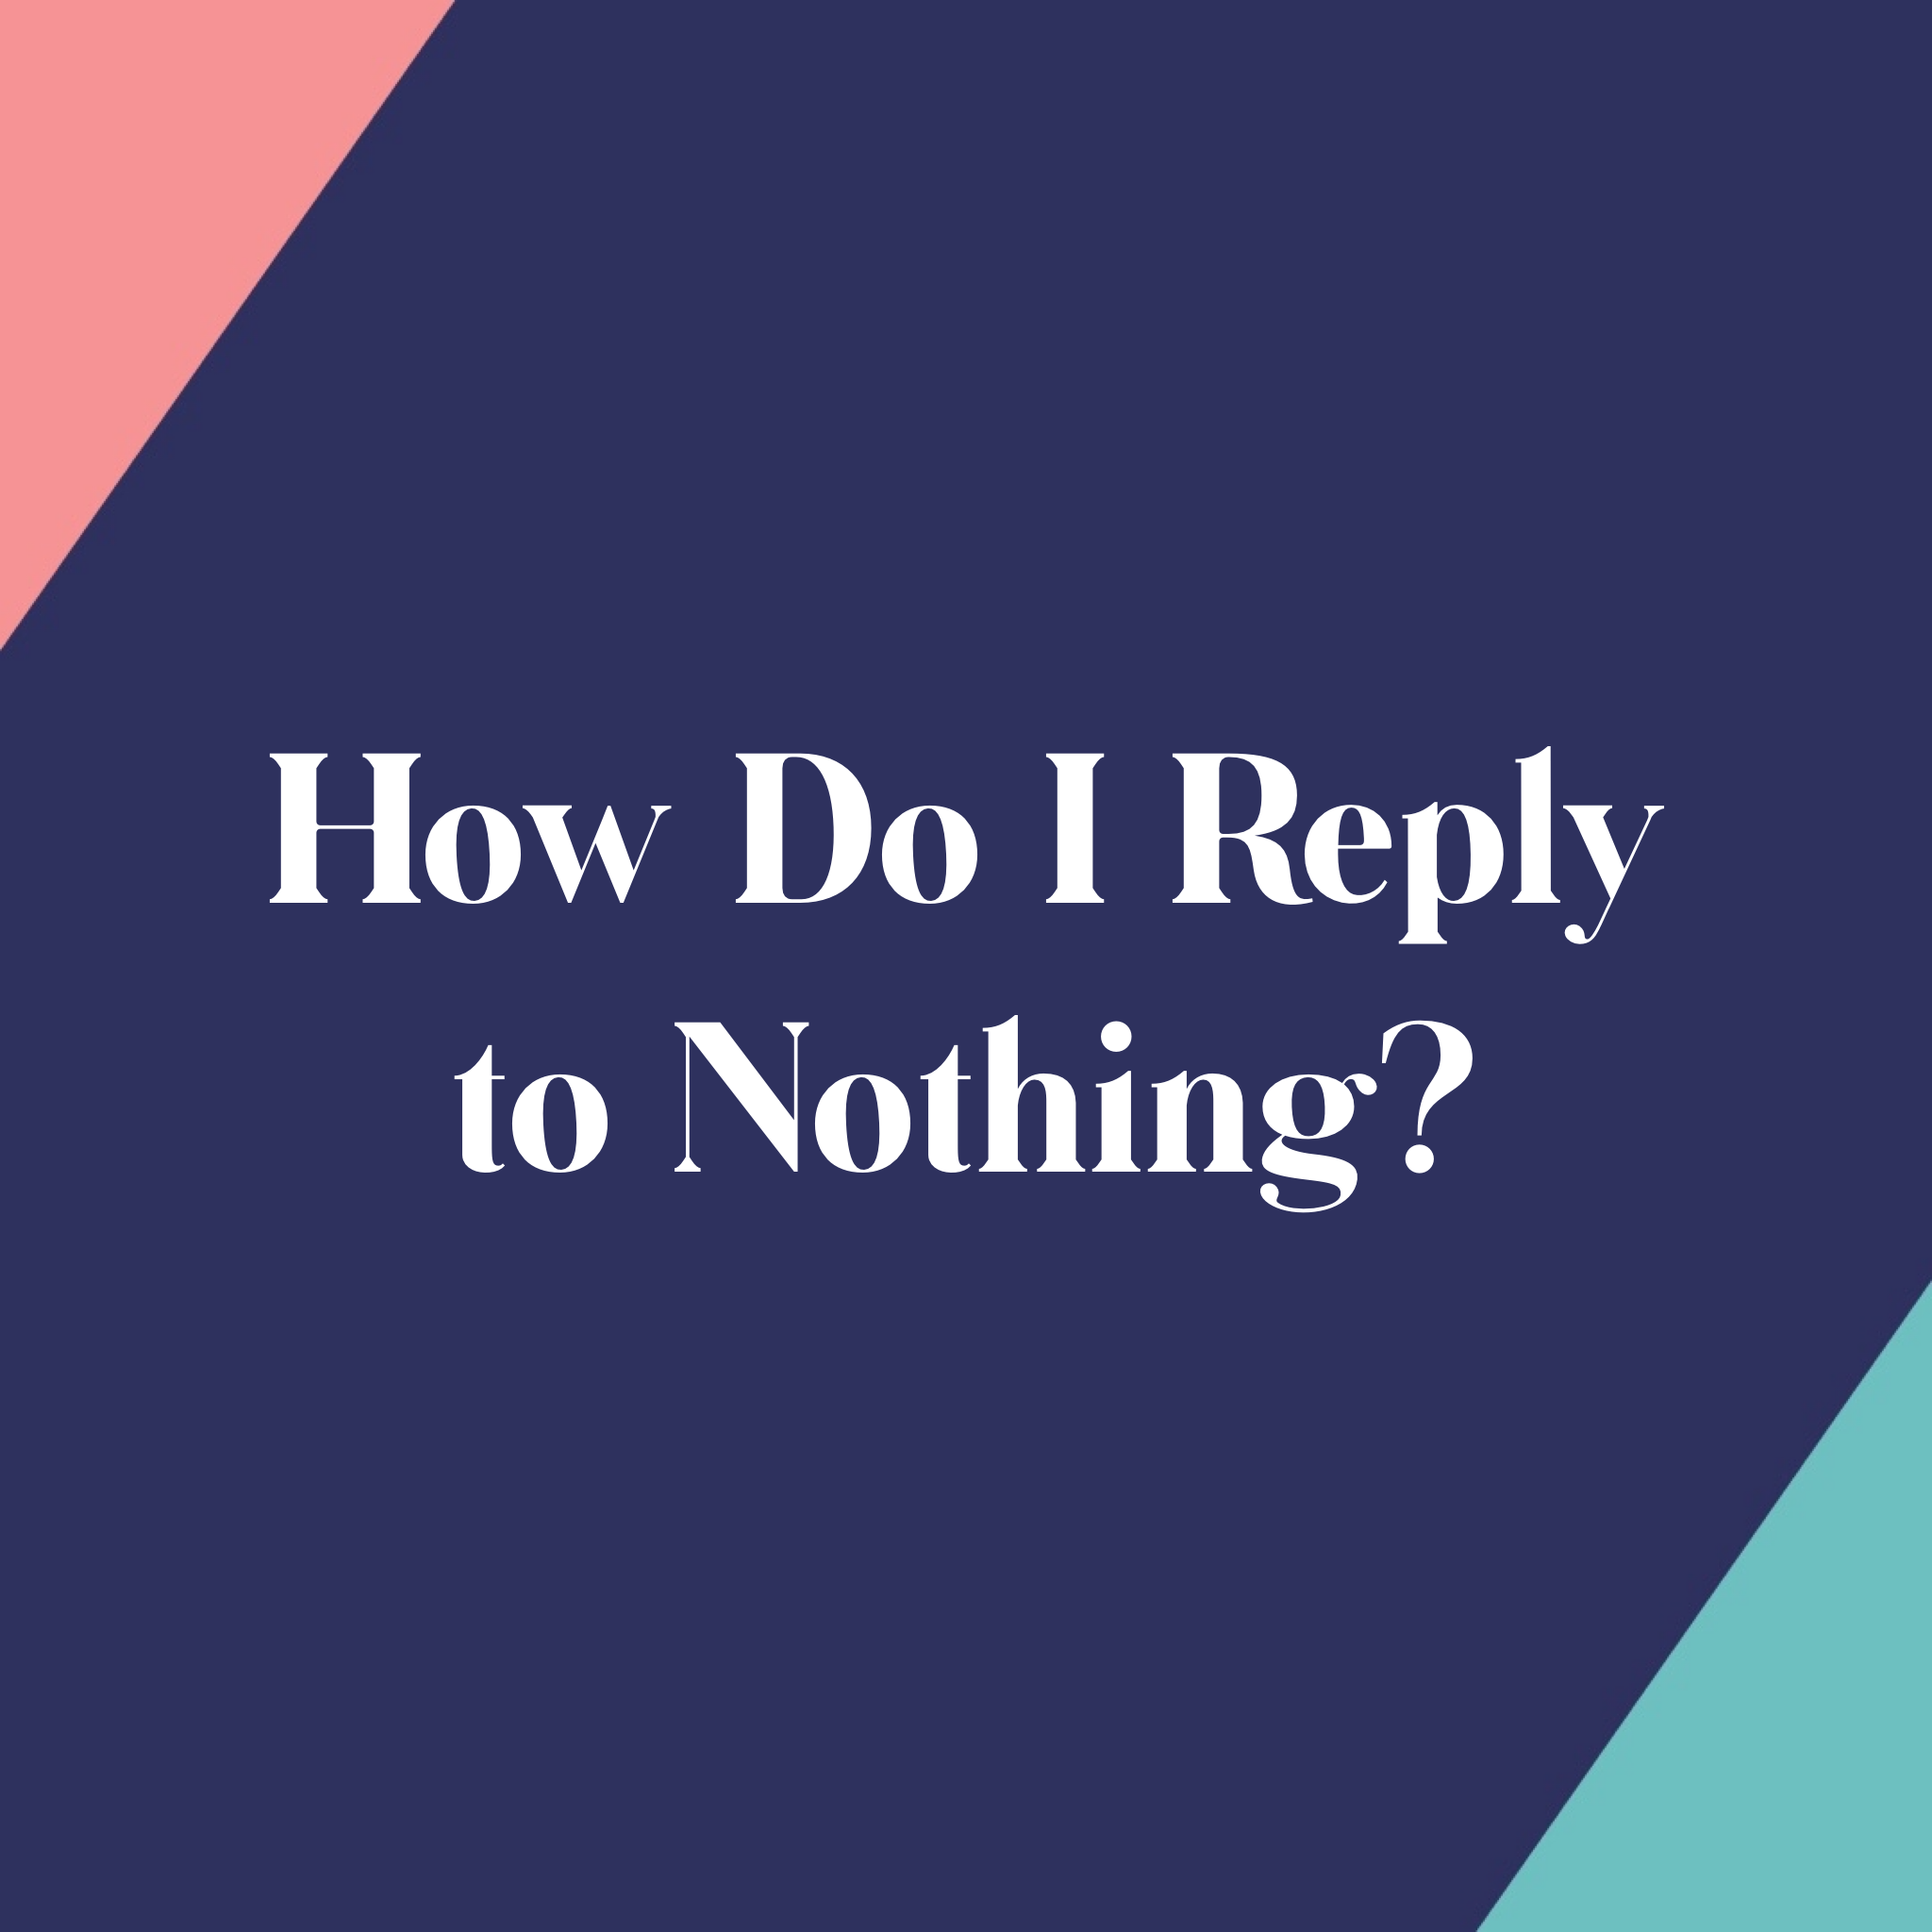 Replying to Nothing